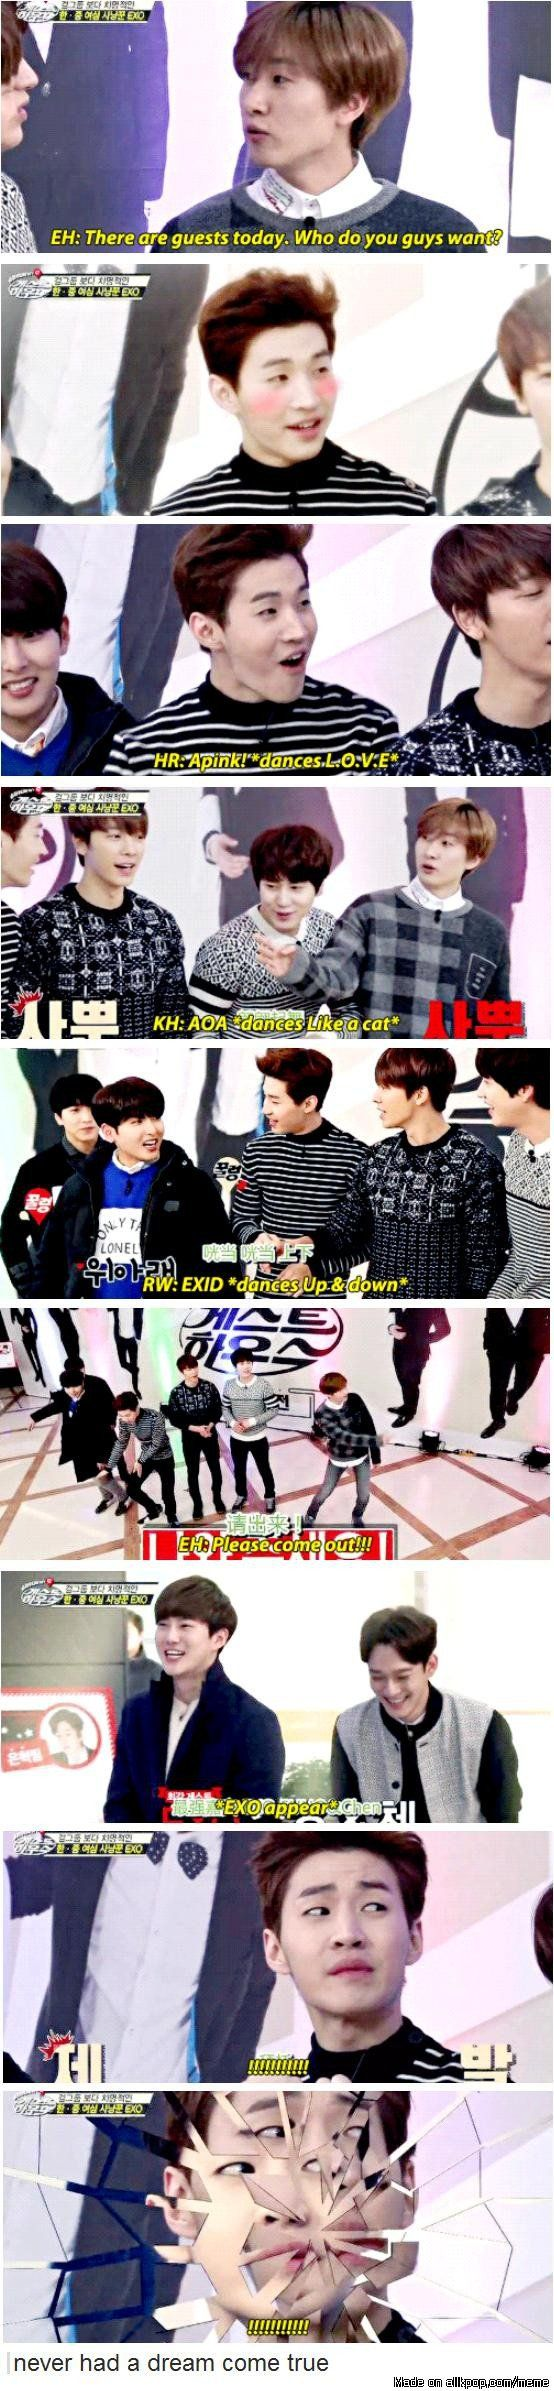 Super Junior disappointed when the special guest is EXO instead of a girl groups XD